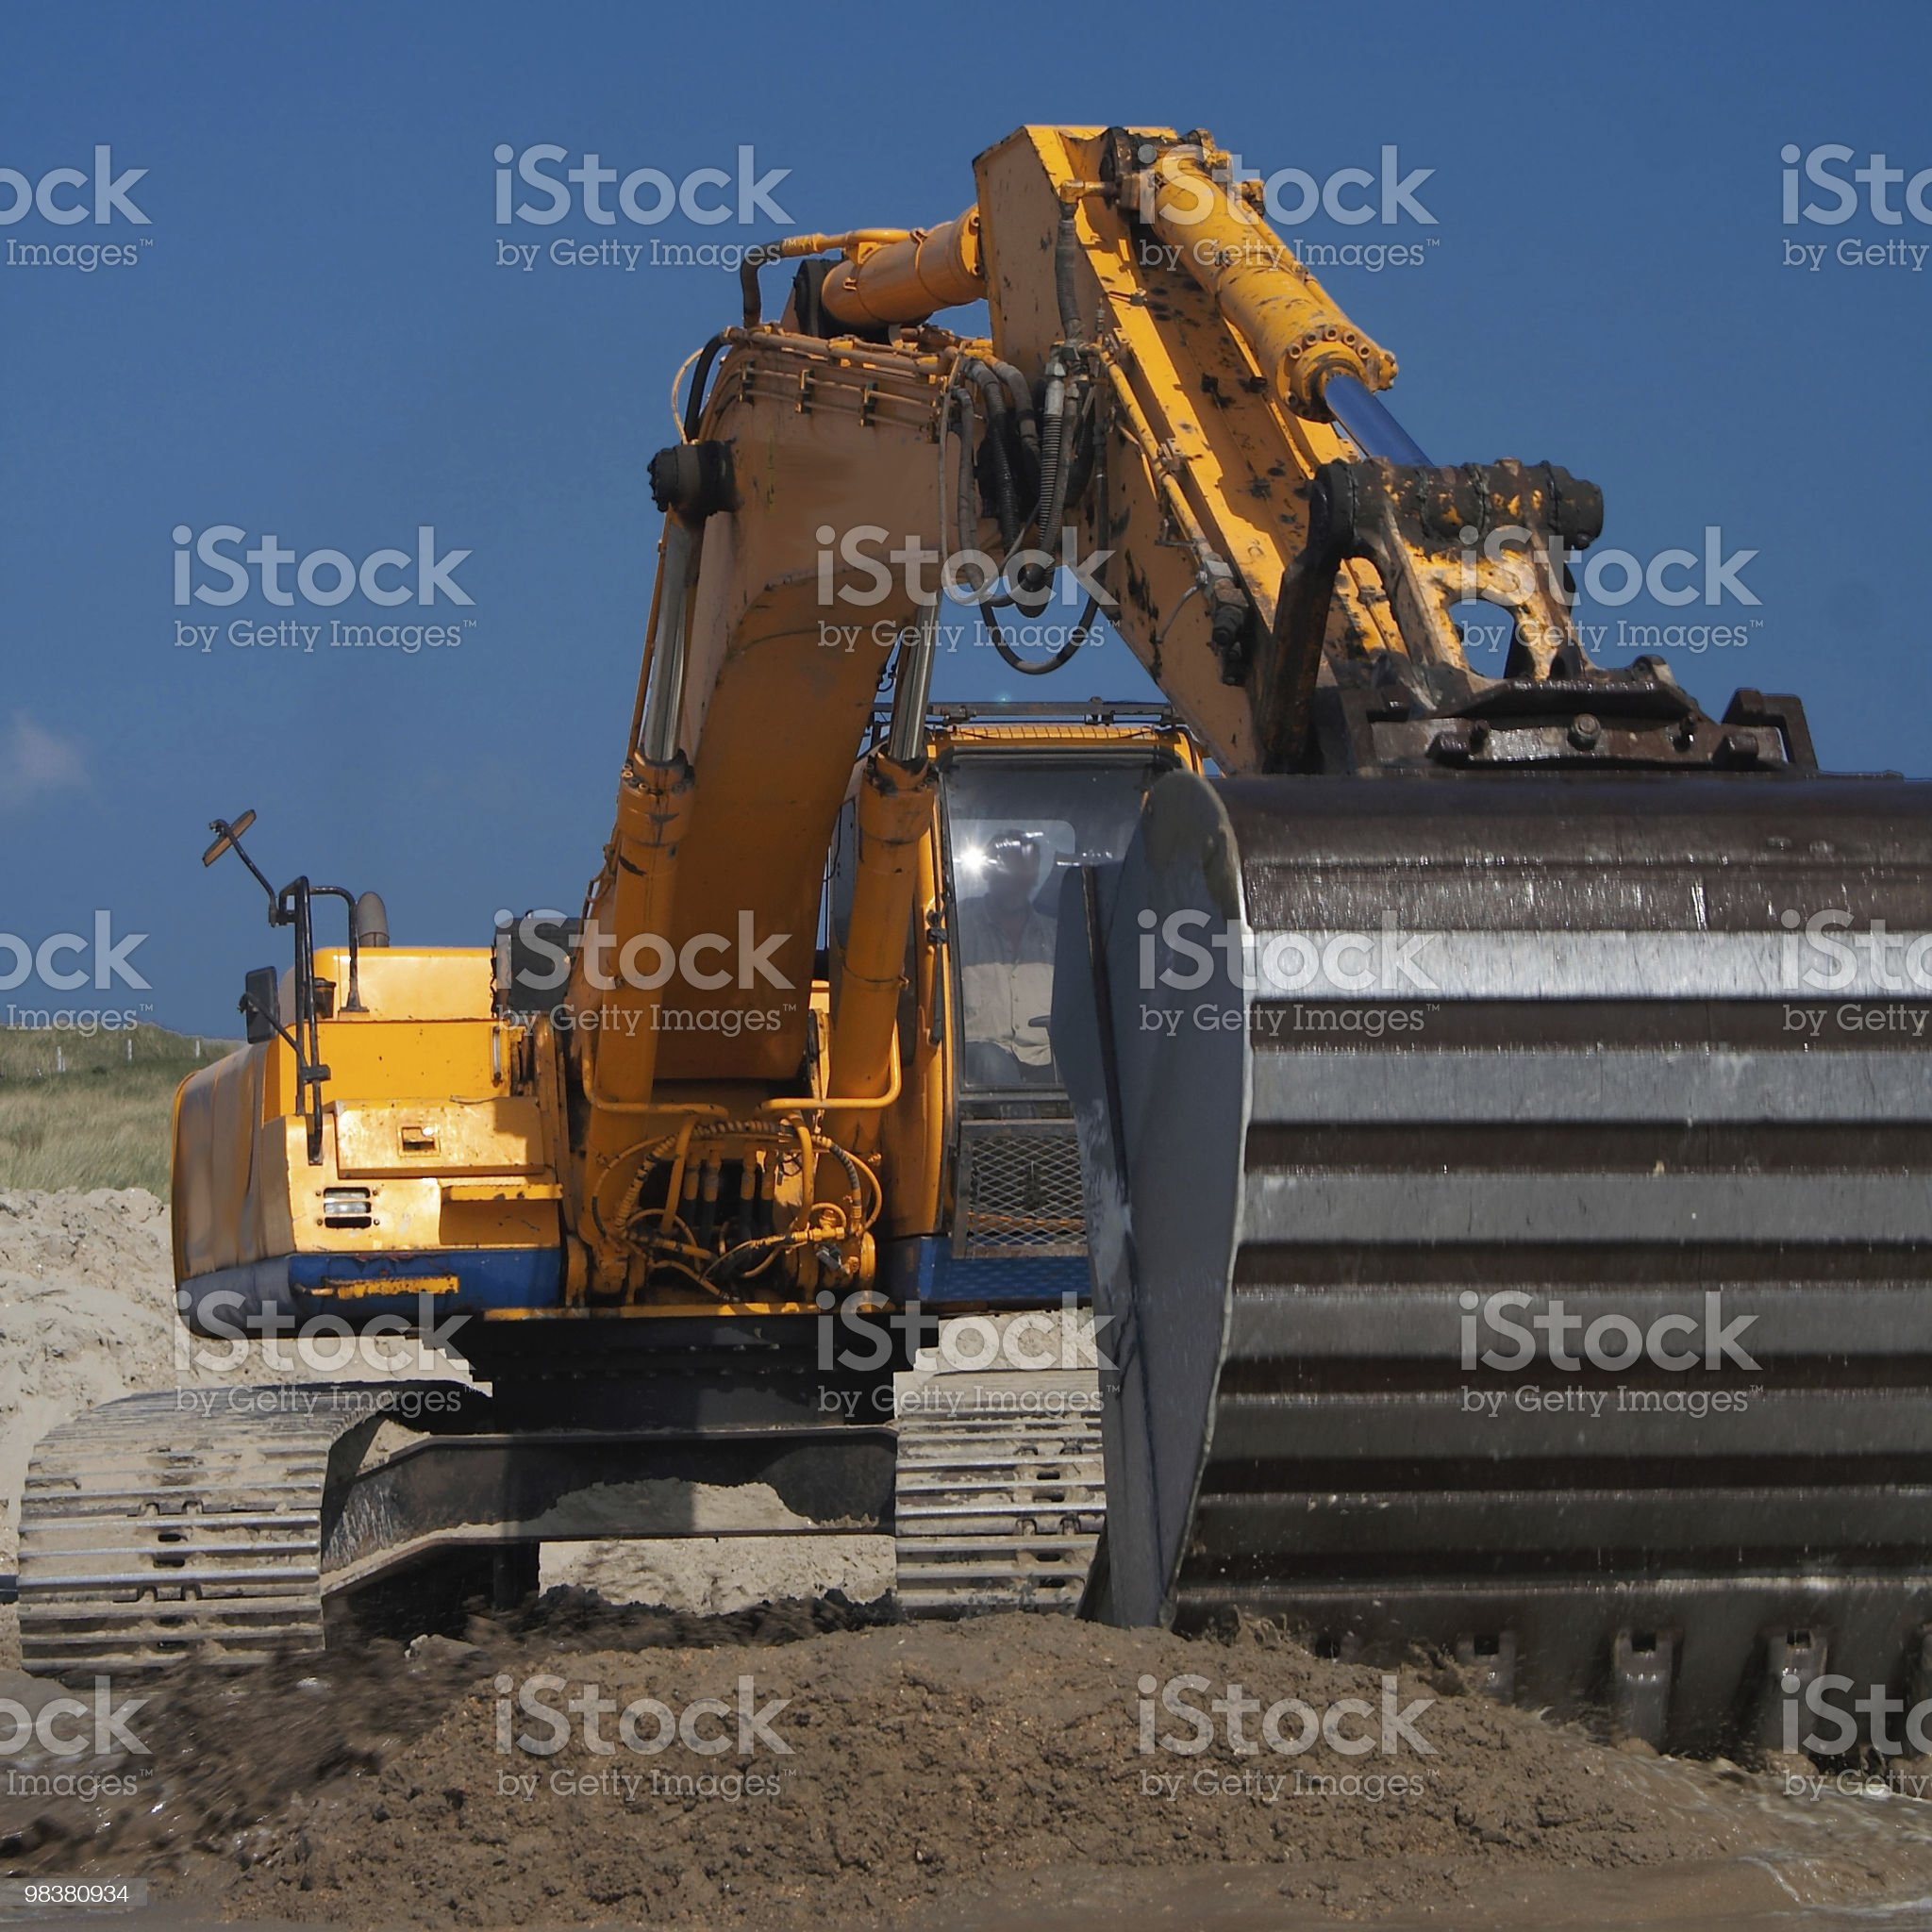 Image of construction equipment in action royalty-free stock photo